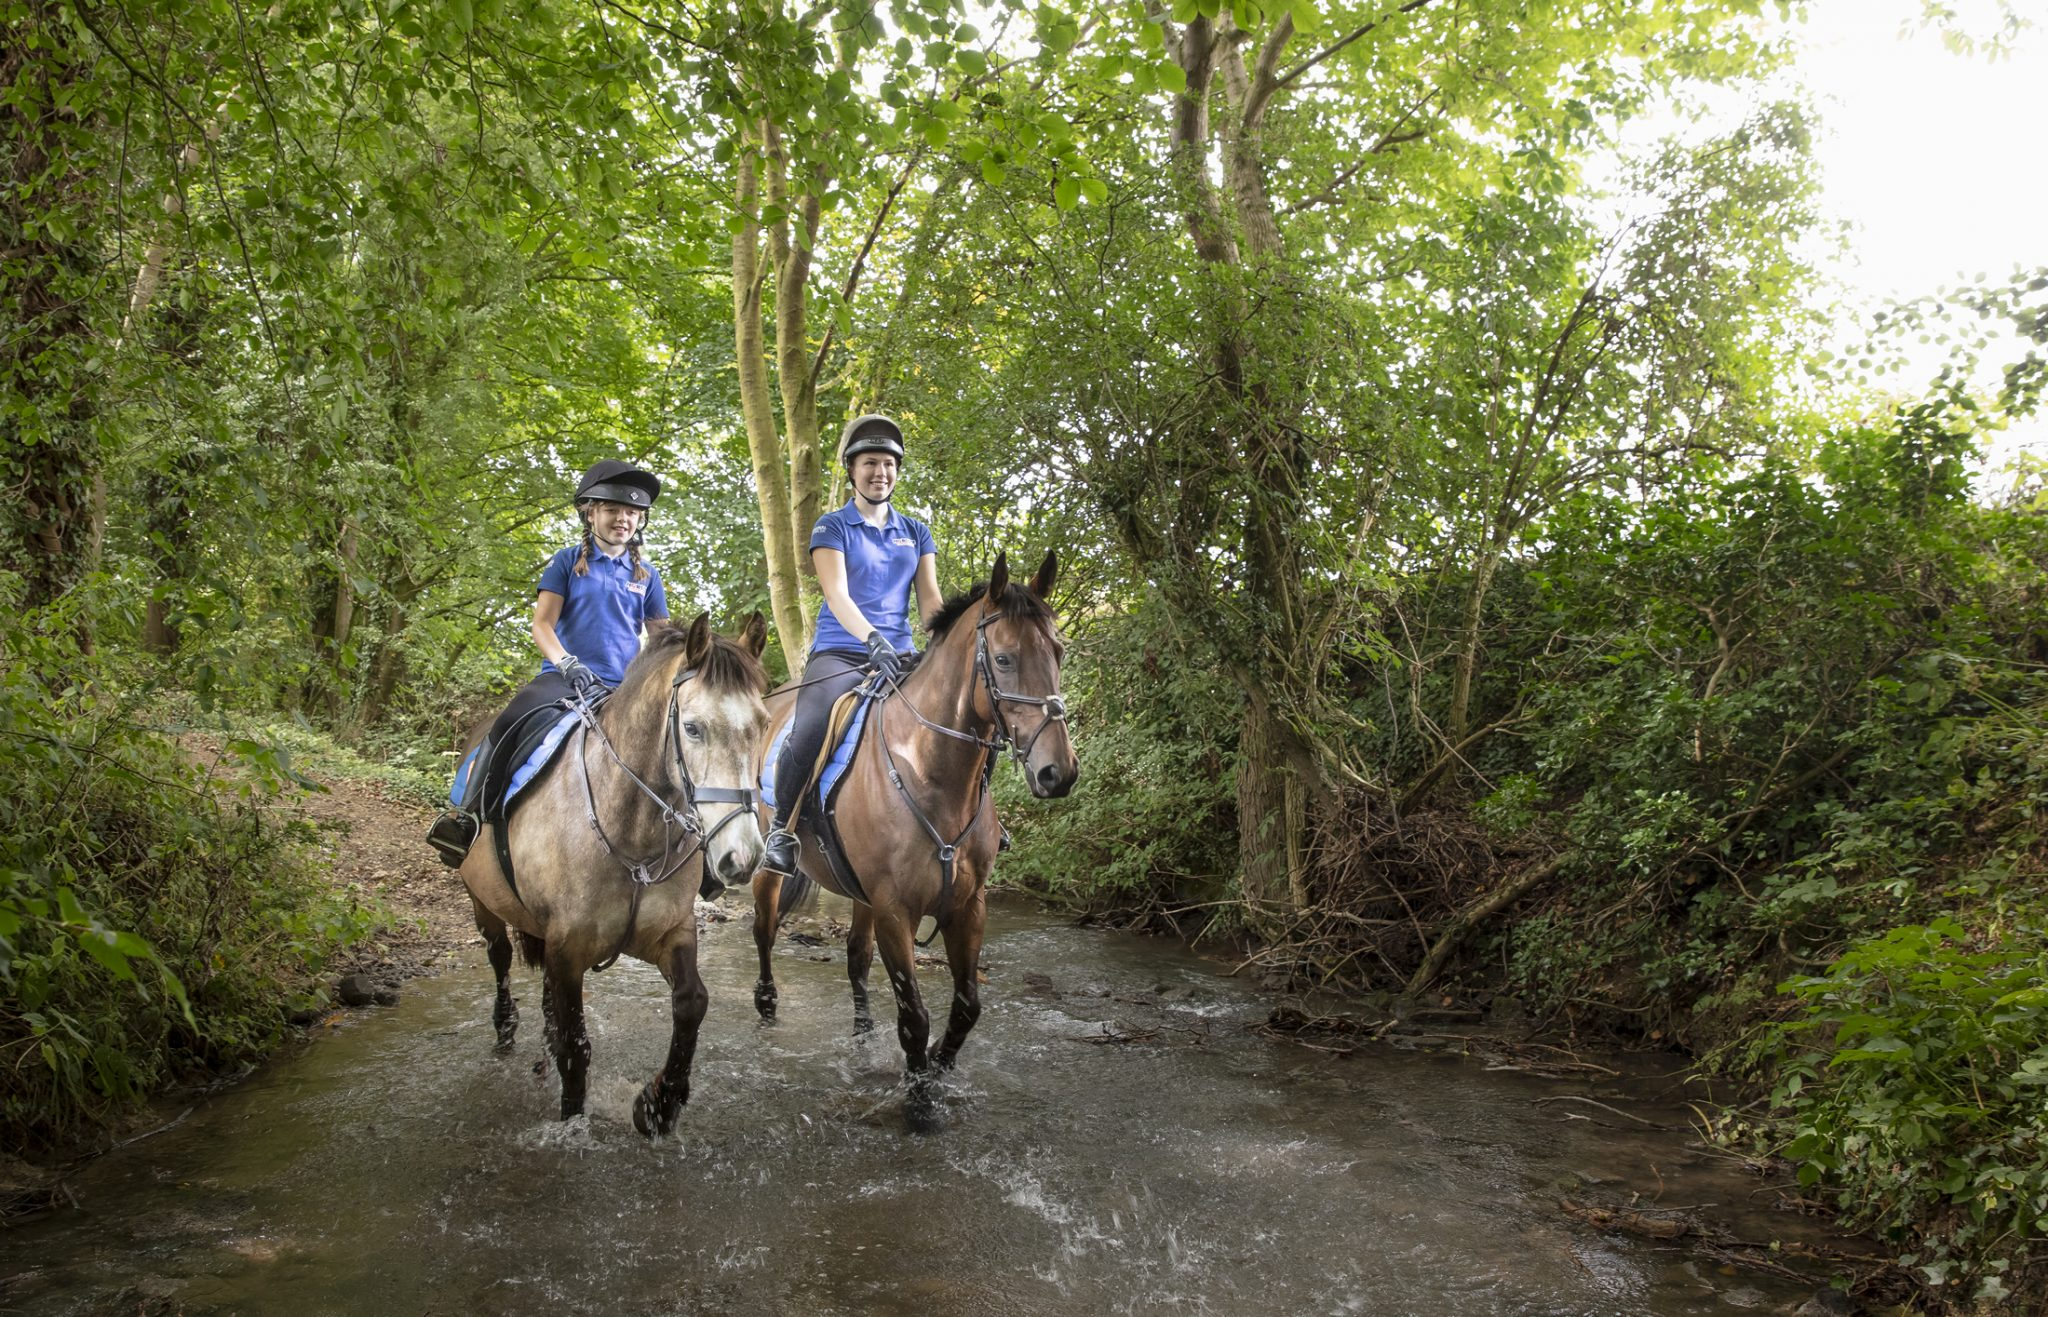 Riding through trees Double Bollin and Duster fed on Horslyx Balancers